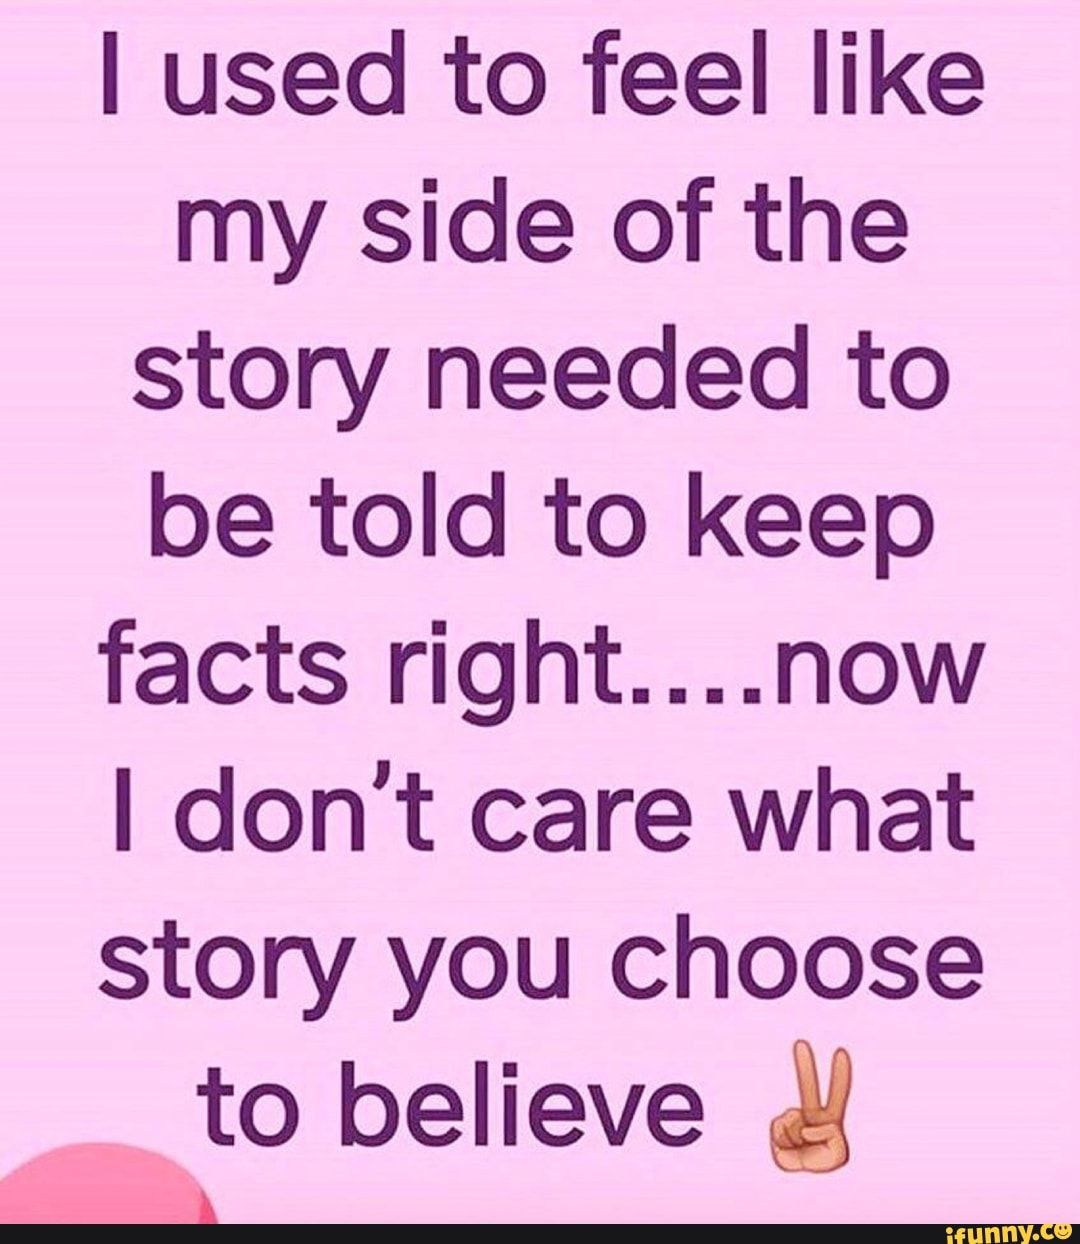 I Used To Feel Like My Side Of The Story Needed To Be Told To Keep Facts Right Now I Don T Care What Story You Choose To Believe Ifunny